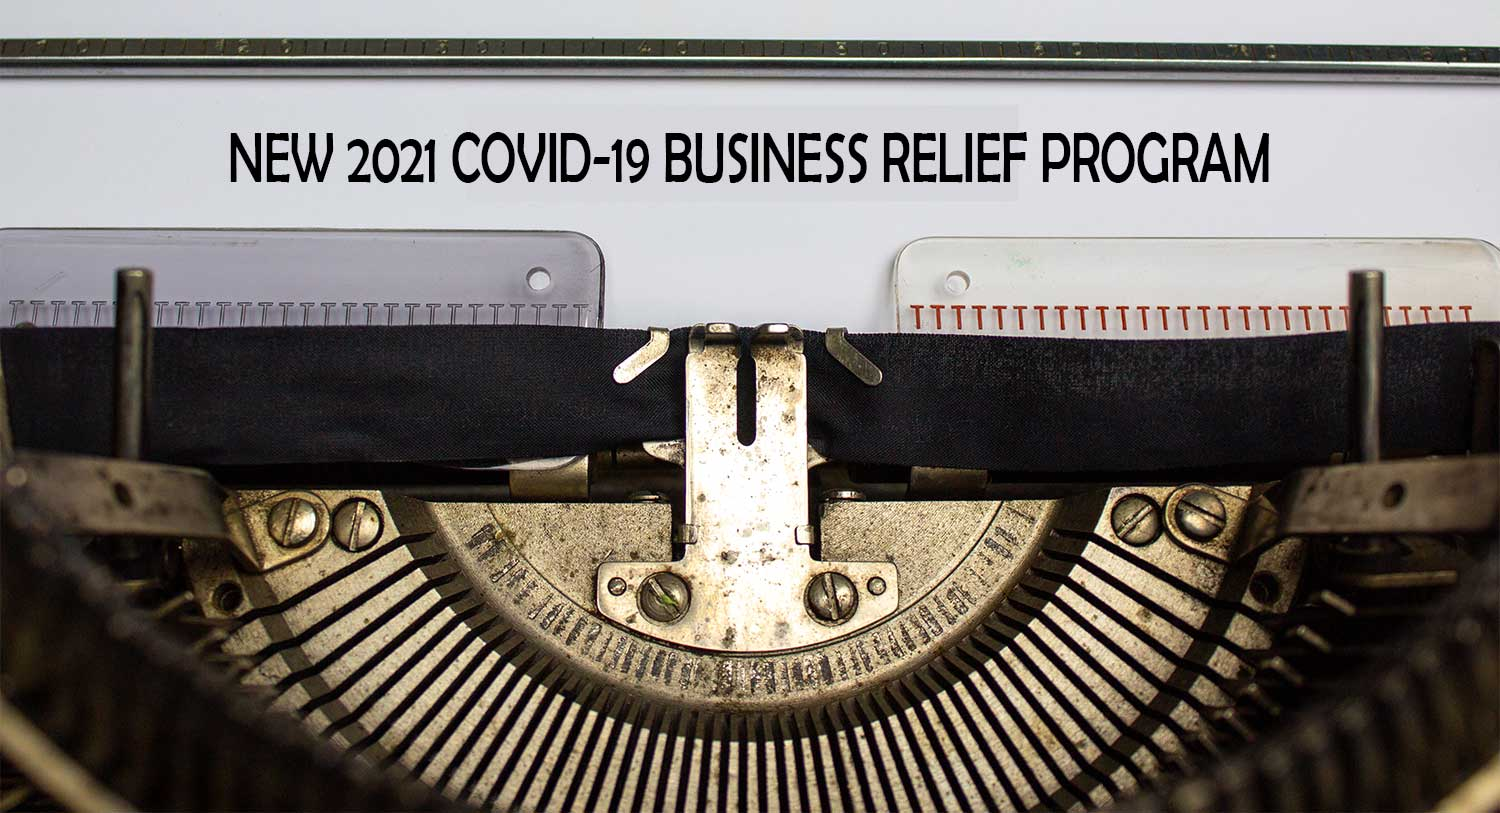 NEW 2021 COVID BUSINESS RELIEF PROGRAM